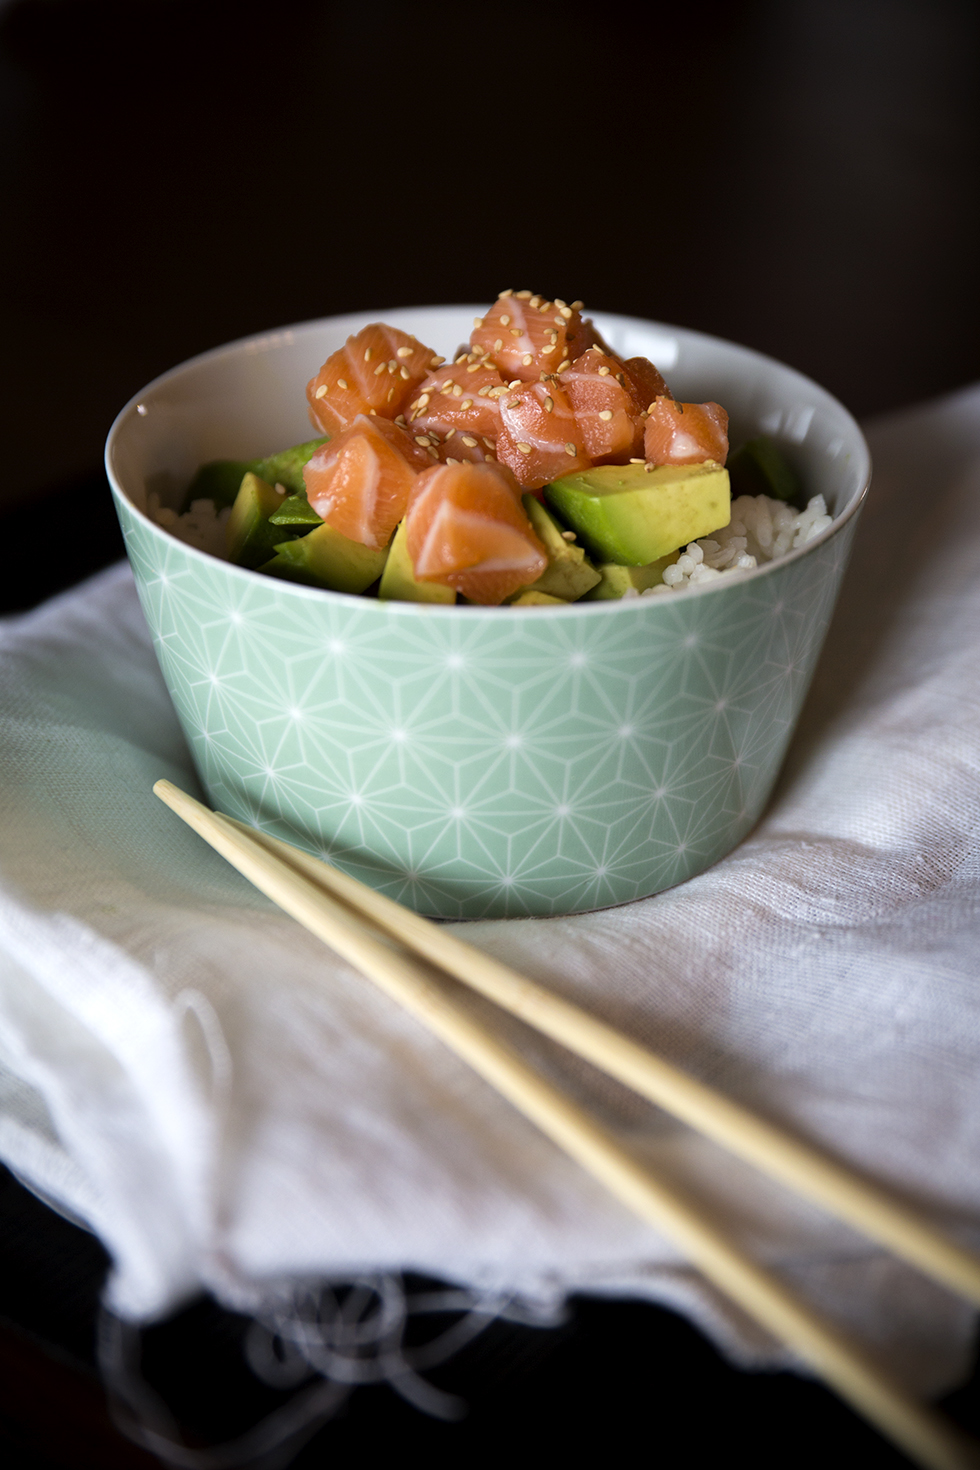 Chirashi Saumon avocat Les Bichettes photo